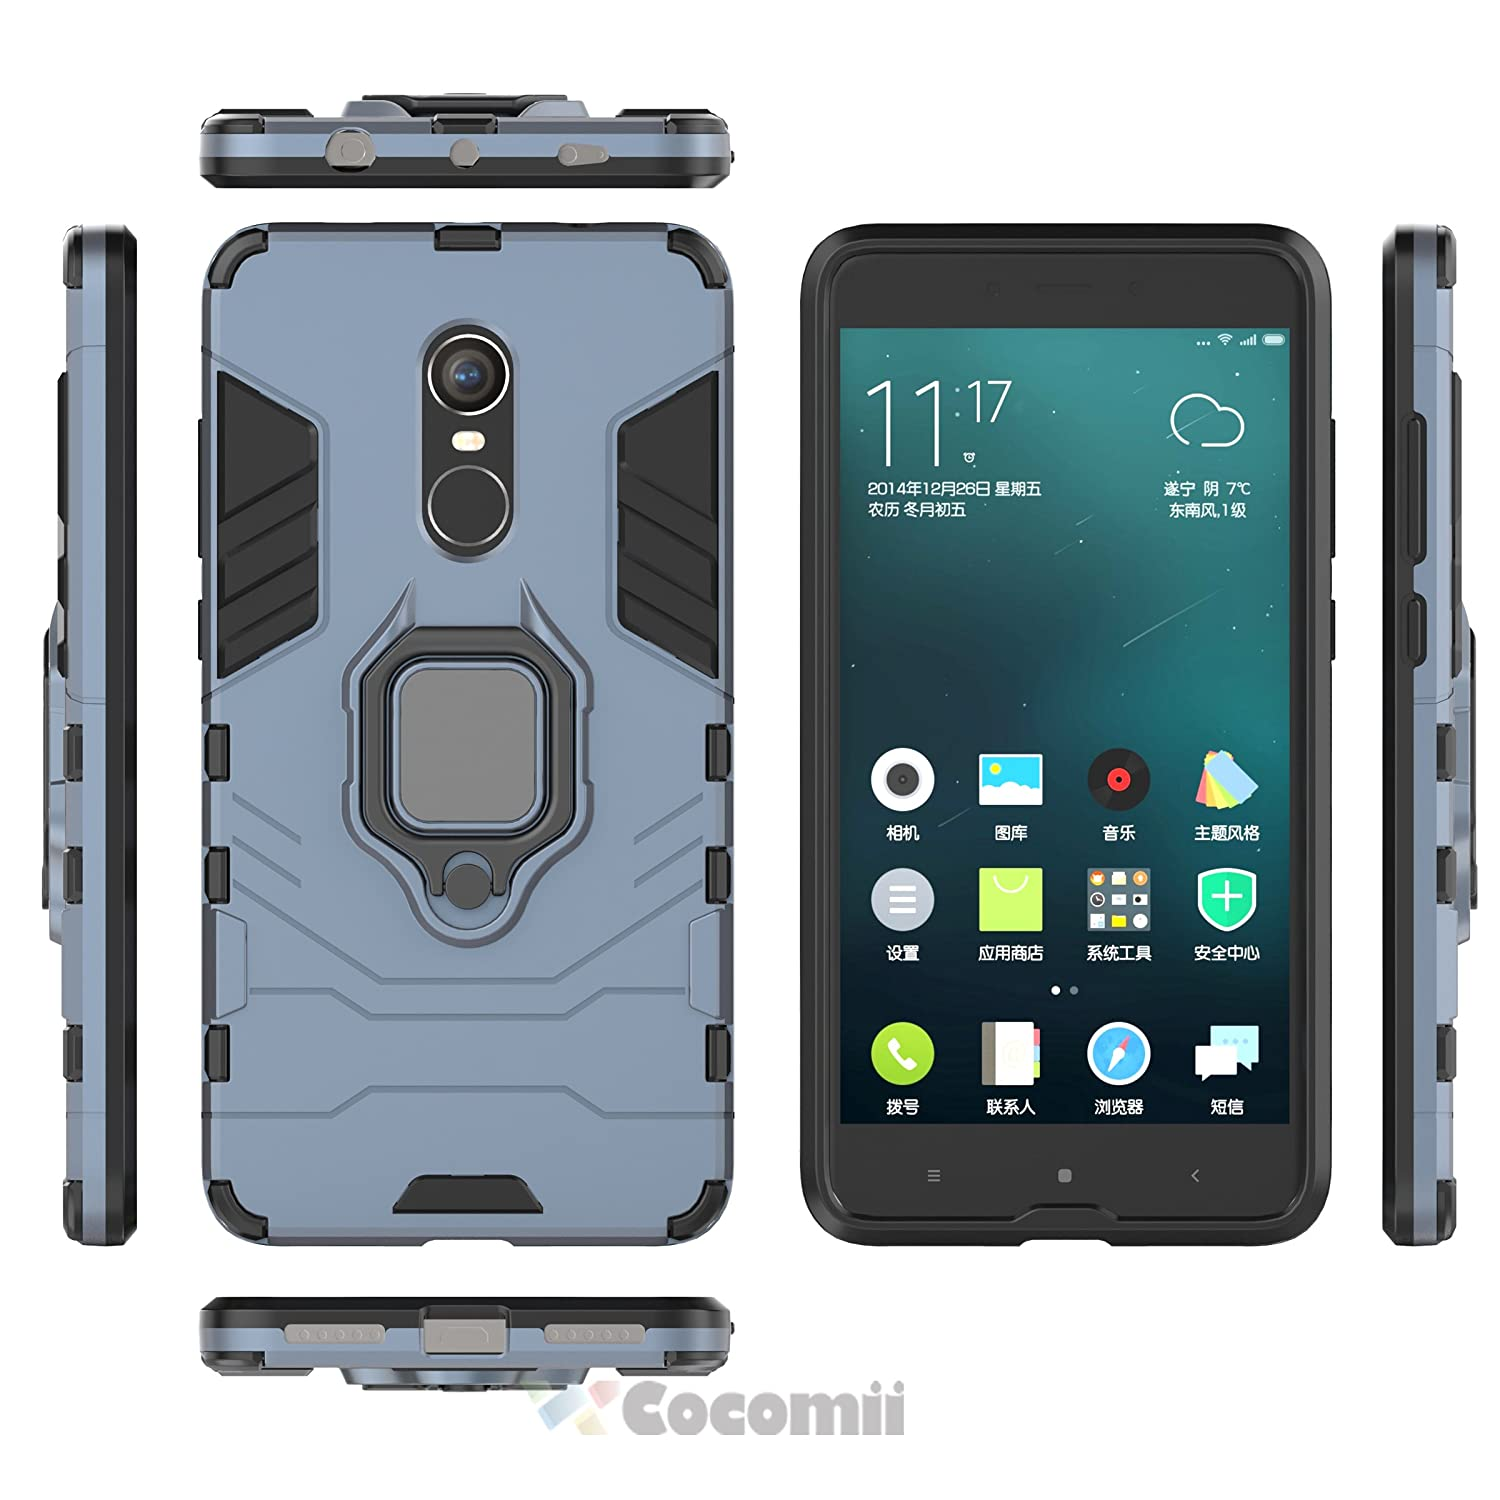 Amazon Co ii Black Panther Armor Xiaomi Redmi Note 4 Note 4X Case New [Heavy Duty] Tactical Metal Ring Grip Kickstand Shockproof [Works with Magnetic